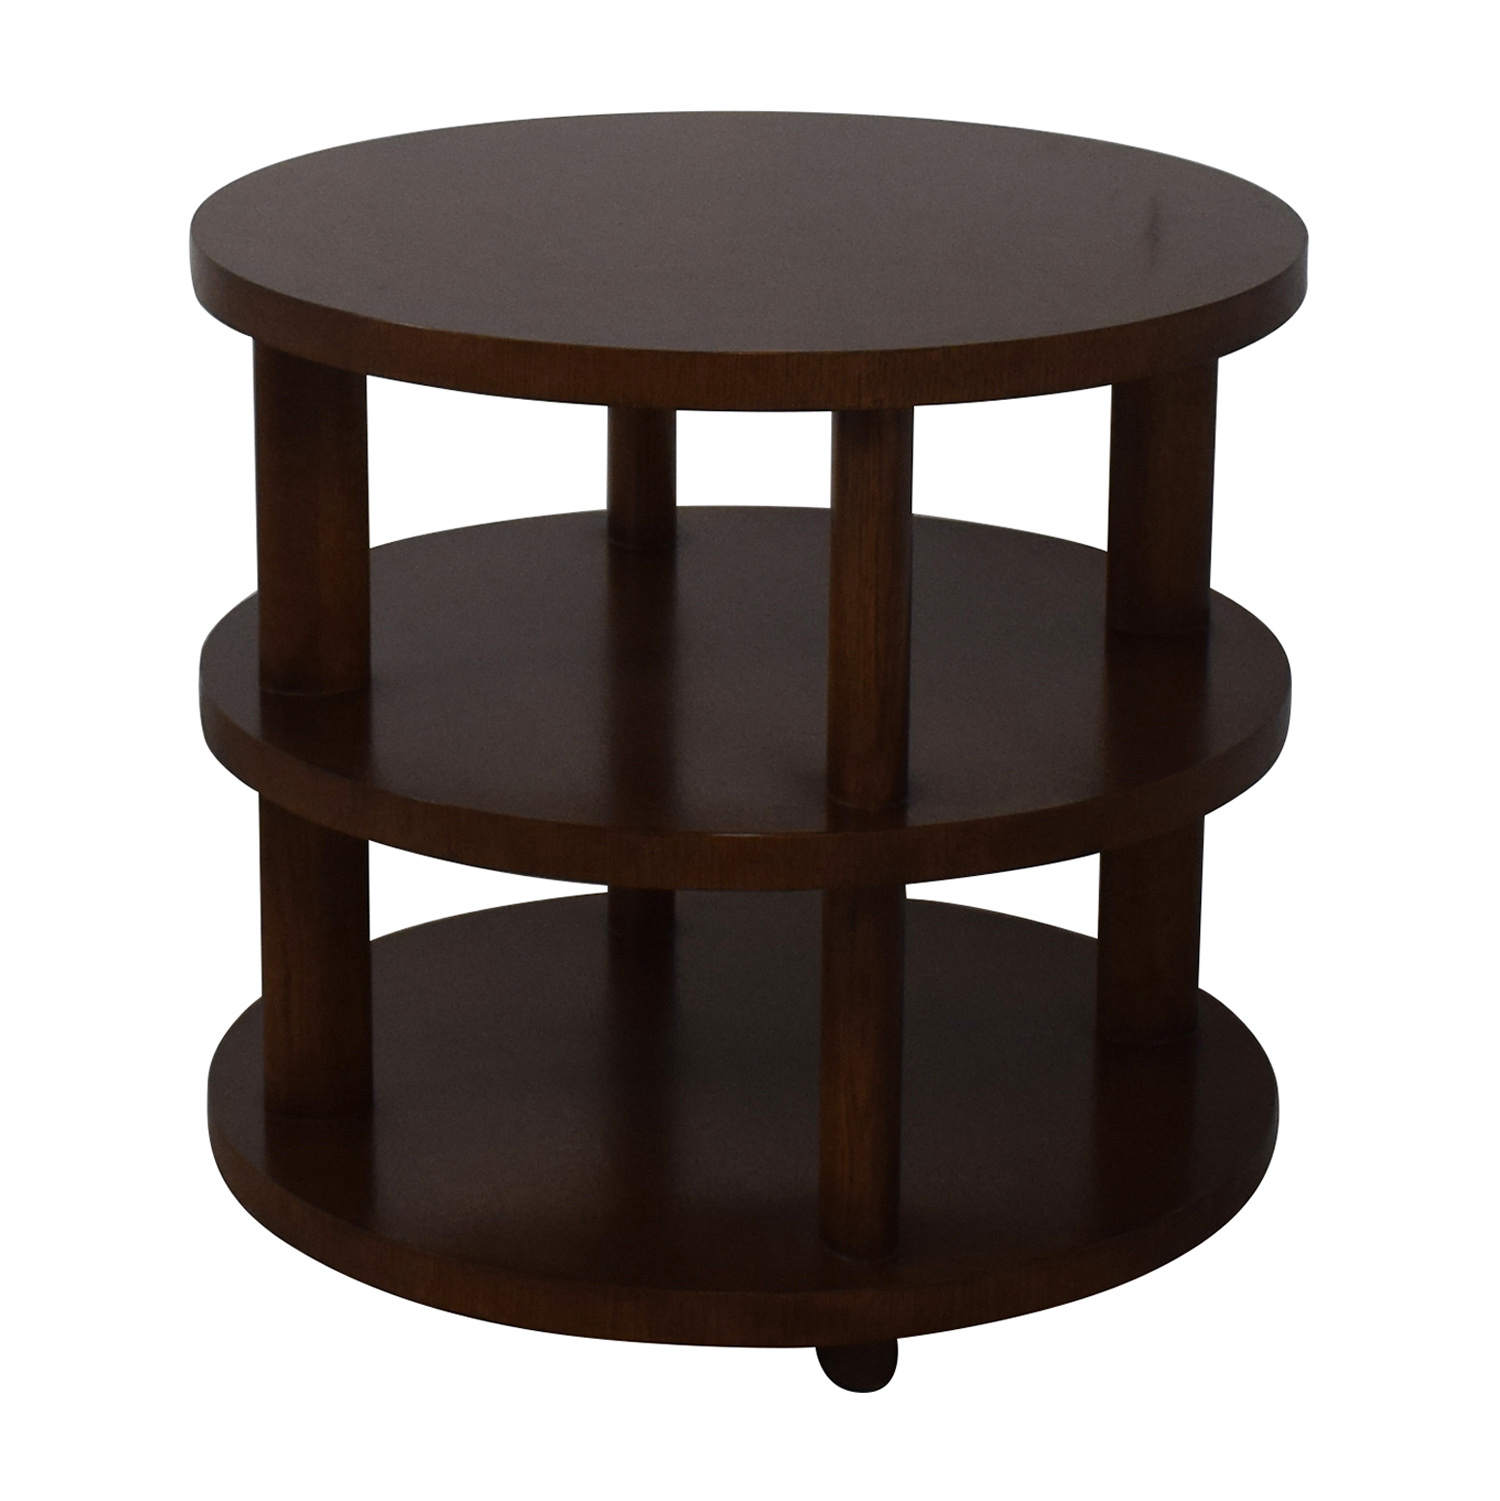 Baker Furniture Barbara Barry Round Tiered Occasional Table Brown